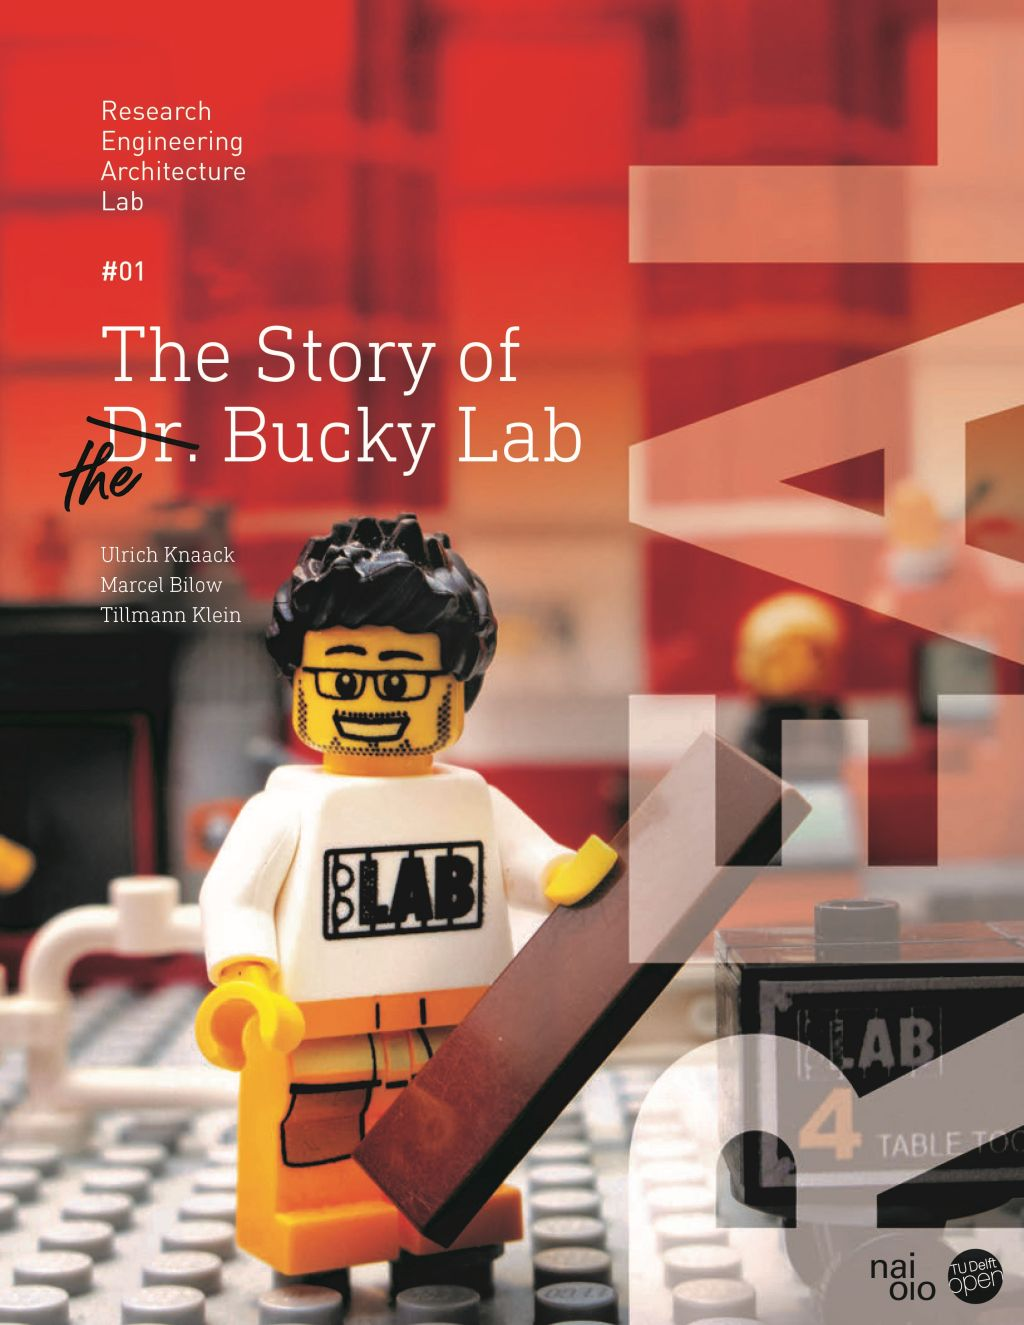 The Story of Dr. Bucky Lab